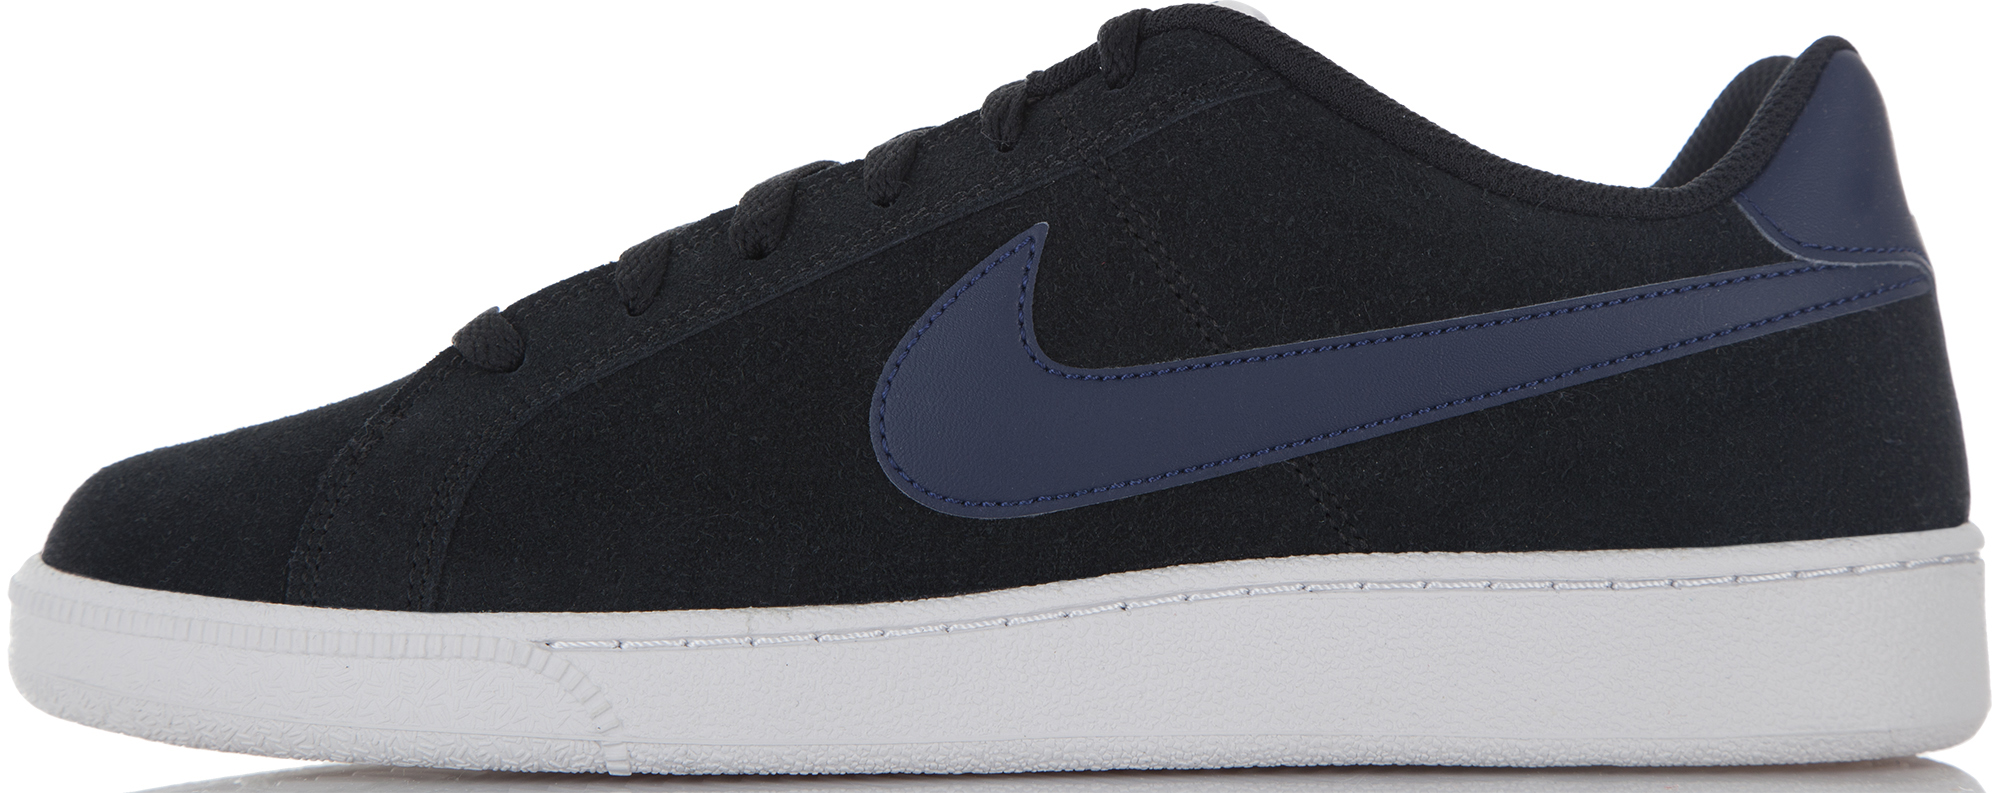 Nike Кеды мужские Nike Court Royale Suede